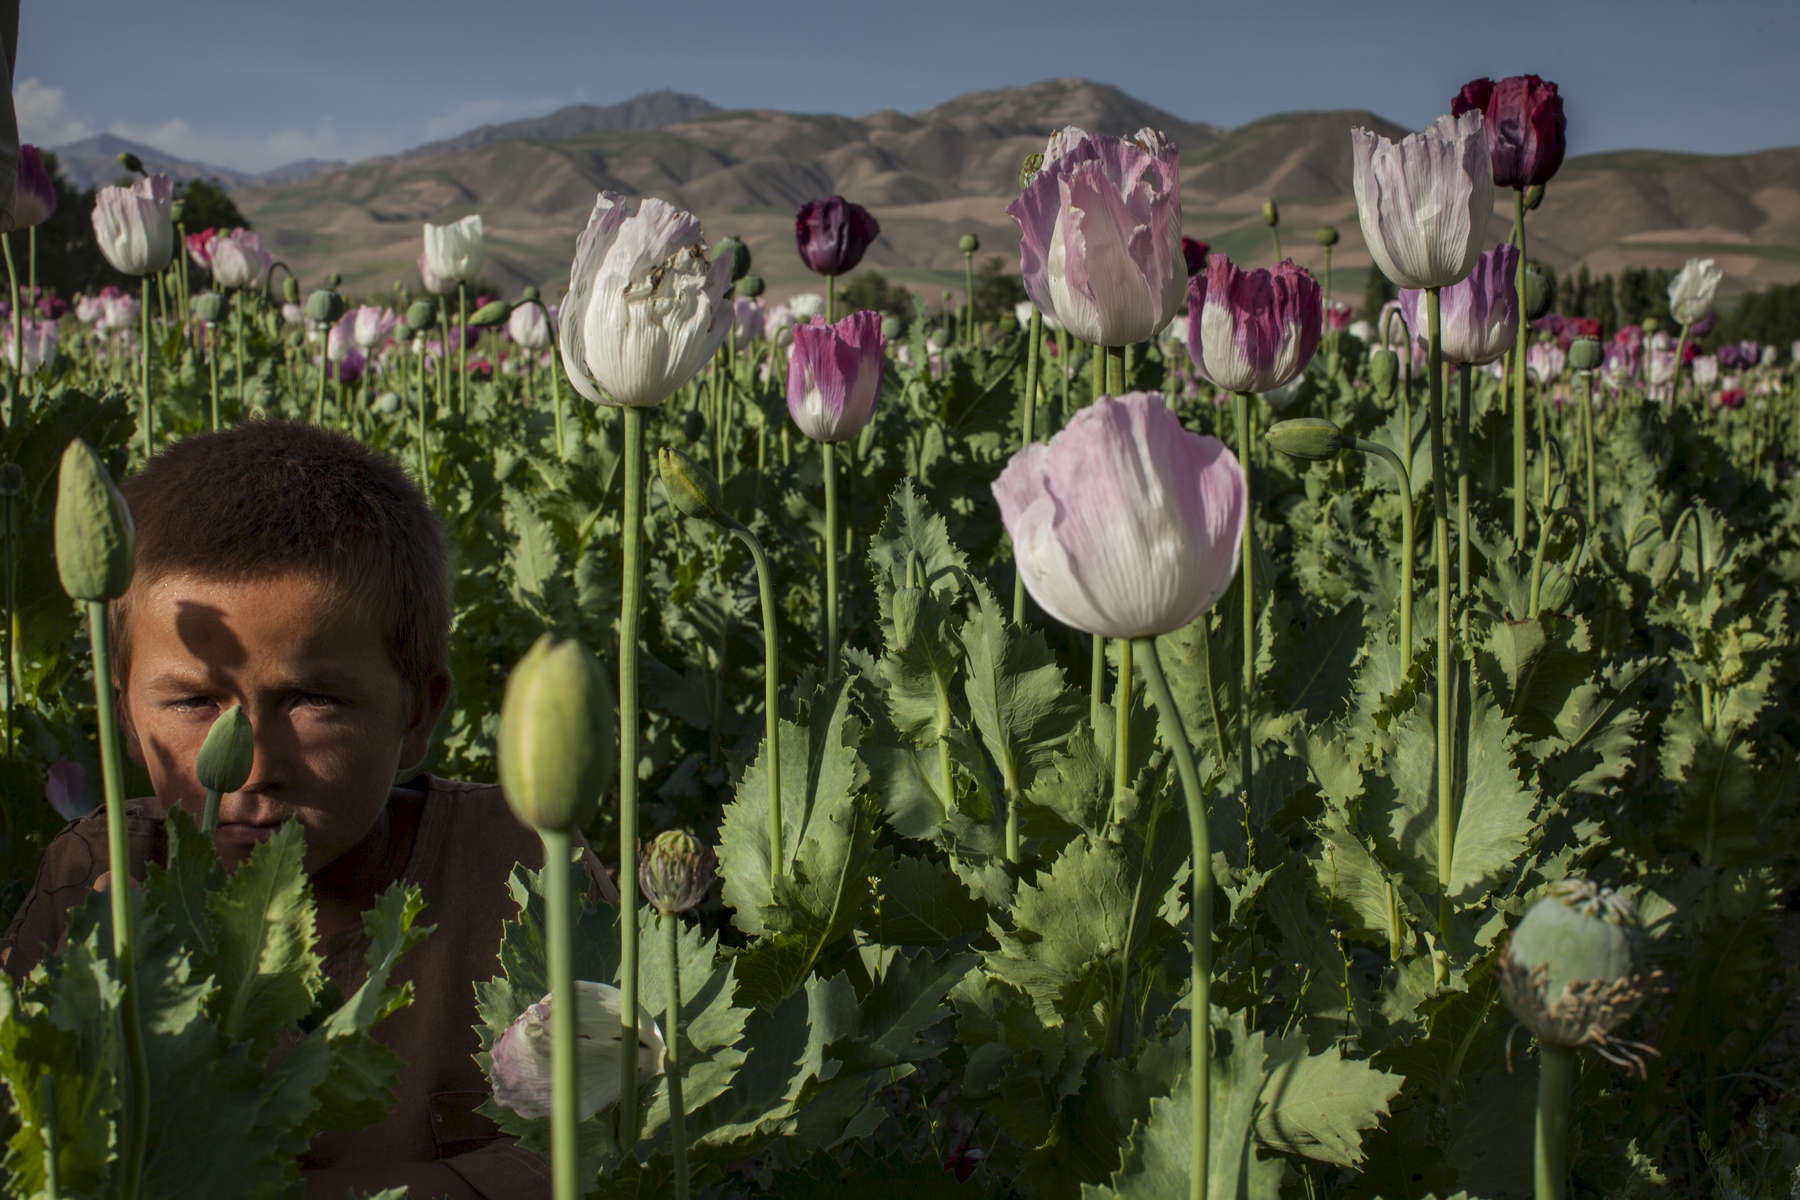 A boy hides in a field of poppy flowers where he is helping his father who is a farmer in Badakhshan province. Most farmers receive 50% of the harvest profits from the opium collected. Afghanistan is still the greatest illicit opium producer in the entire world, ahead of Burma (Myanmar).  Currently 1kg of opium equals about $200 US. Opium production in Afghanistan has been on the rise since U.S. occupation started in 2001. May 24, 2011